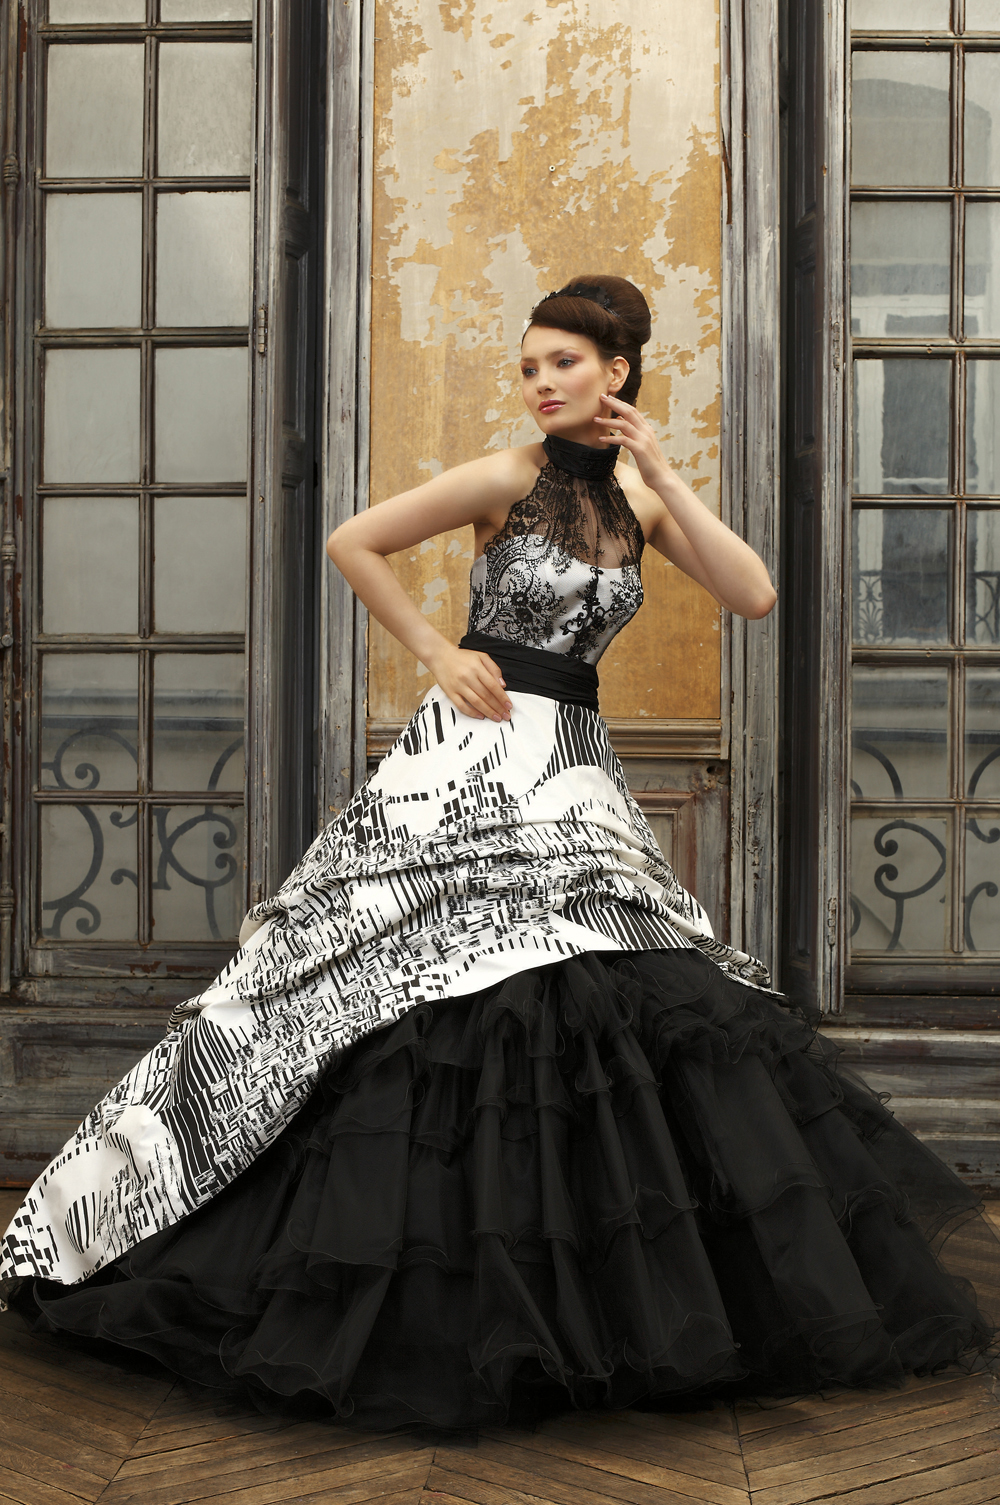 Black and white ball gown wedding dress with halter neck